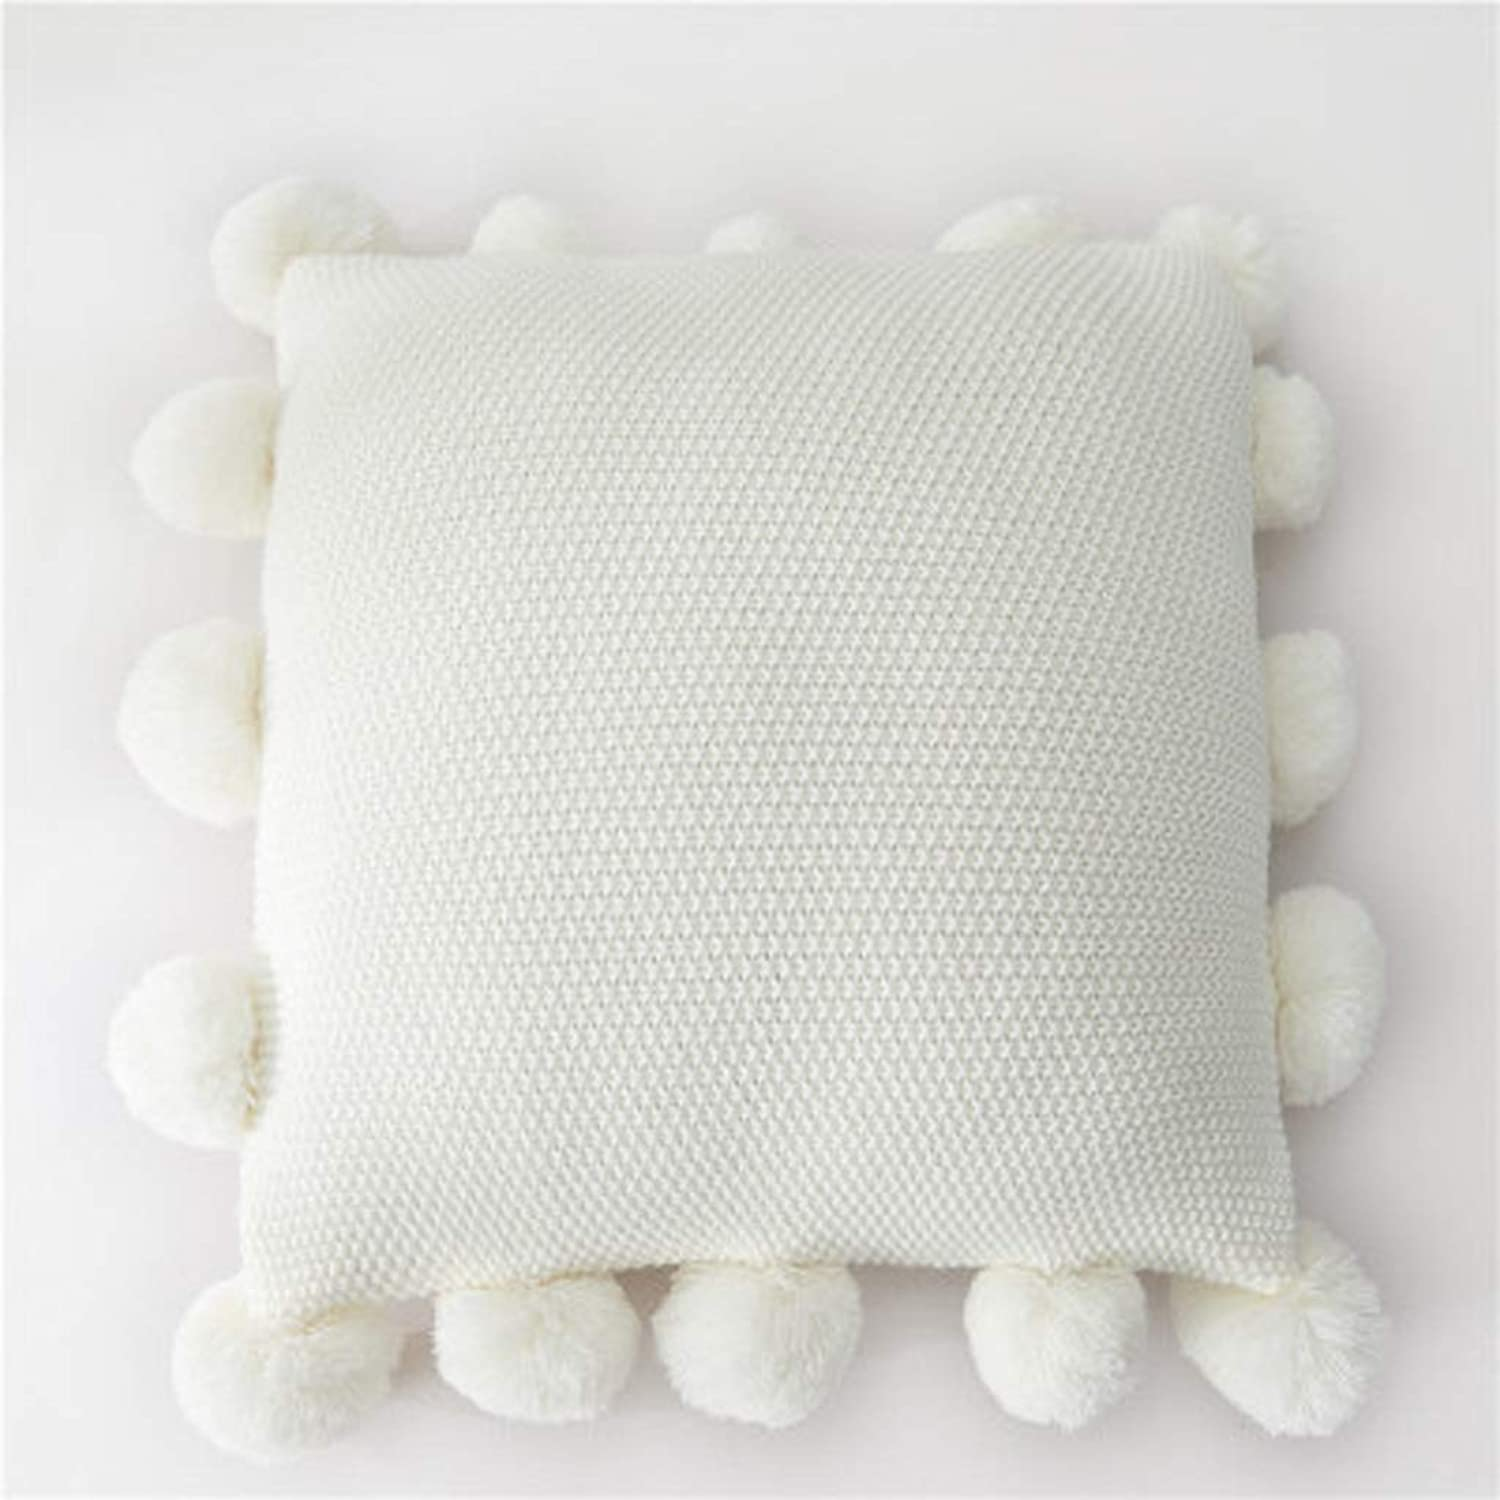 Pillow Solid color Ball Big Pillow Wool Home Sofa Cushion Cover Durable and Comfortable QYSZYG (color   White)